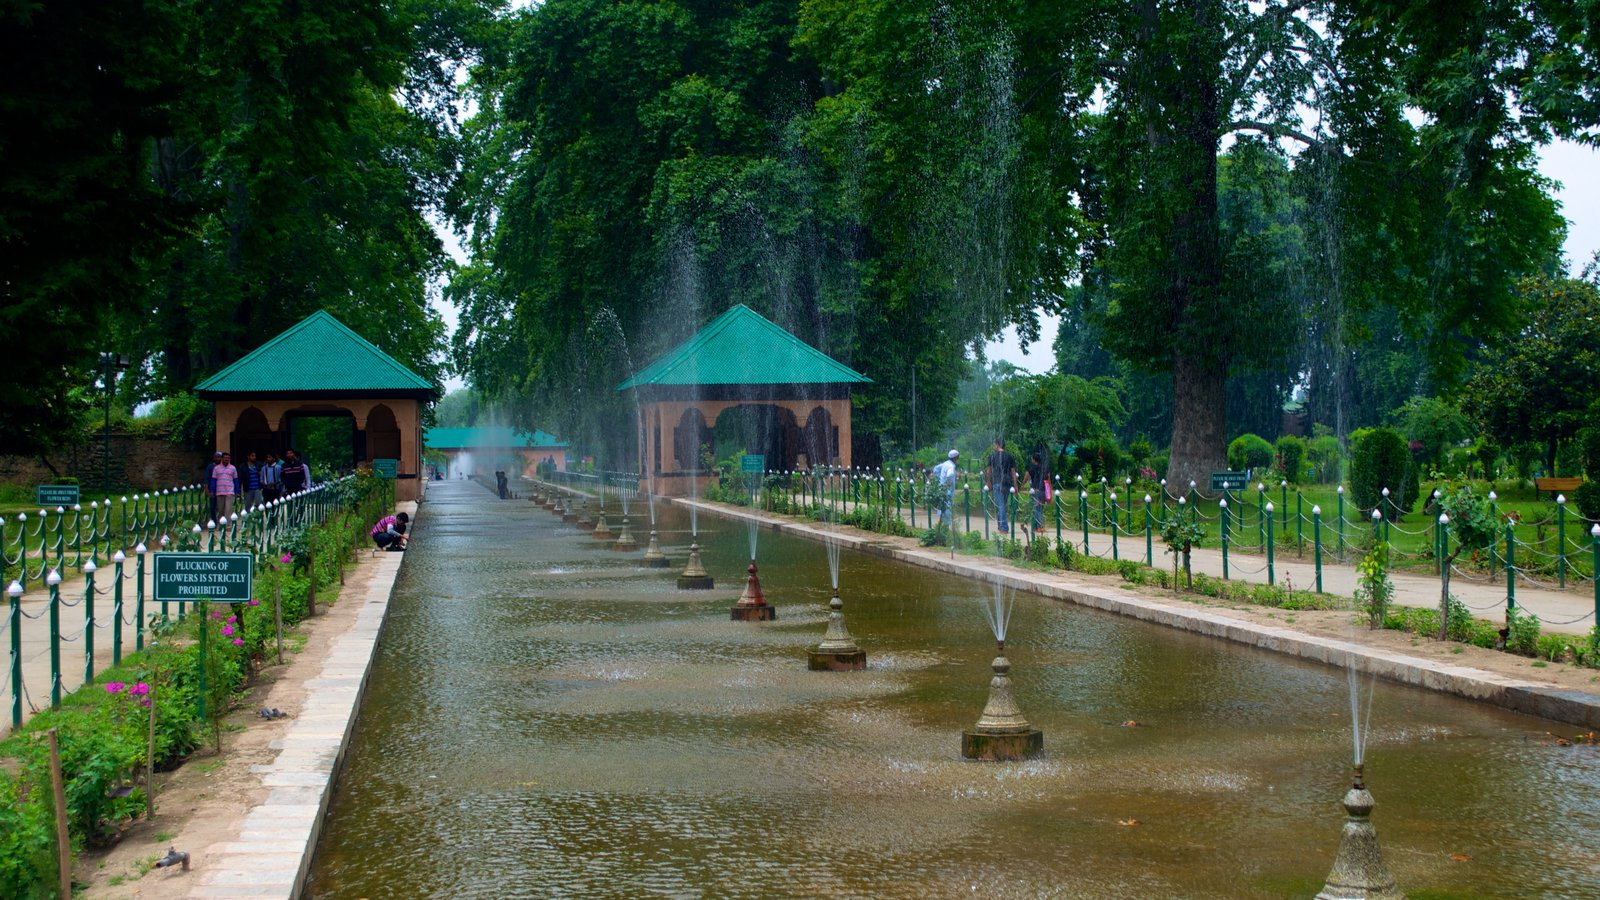 shahlimar bagh - things to do in Lahore